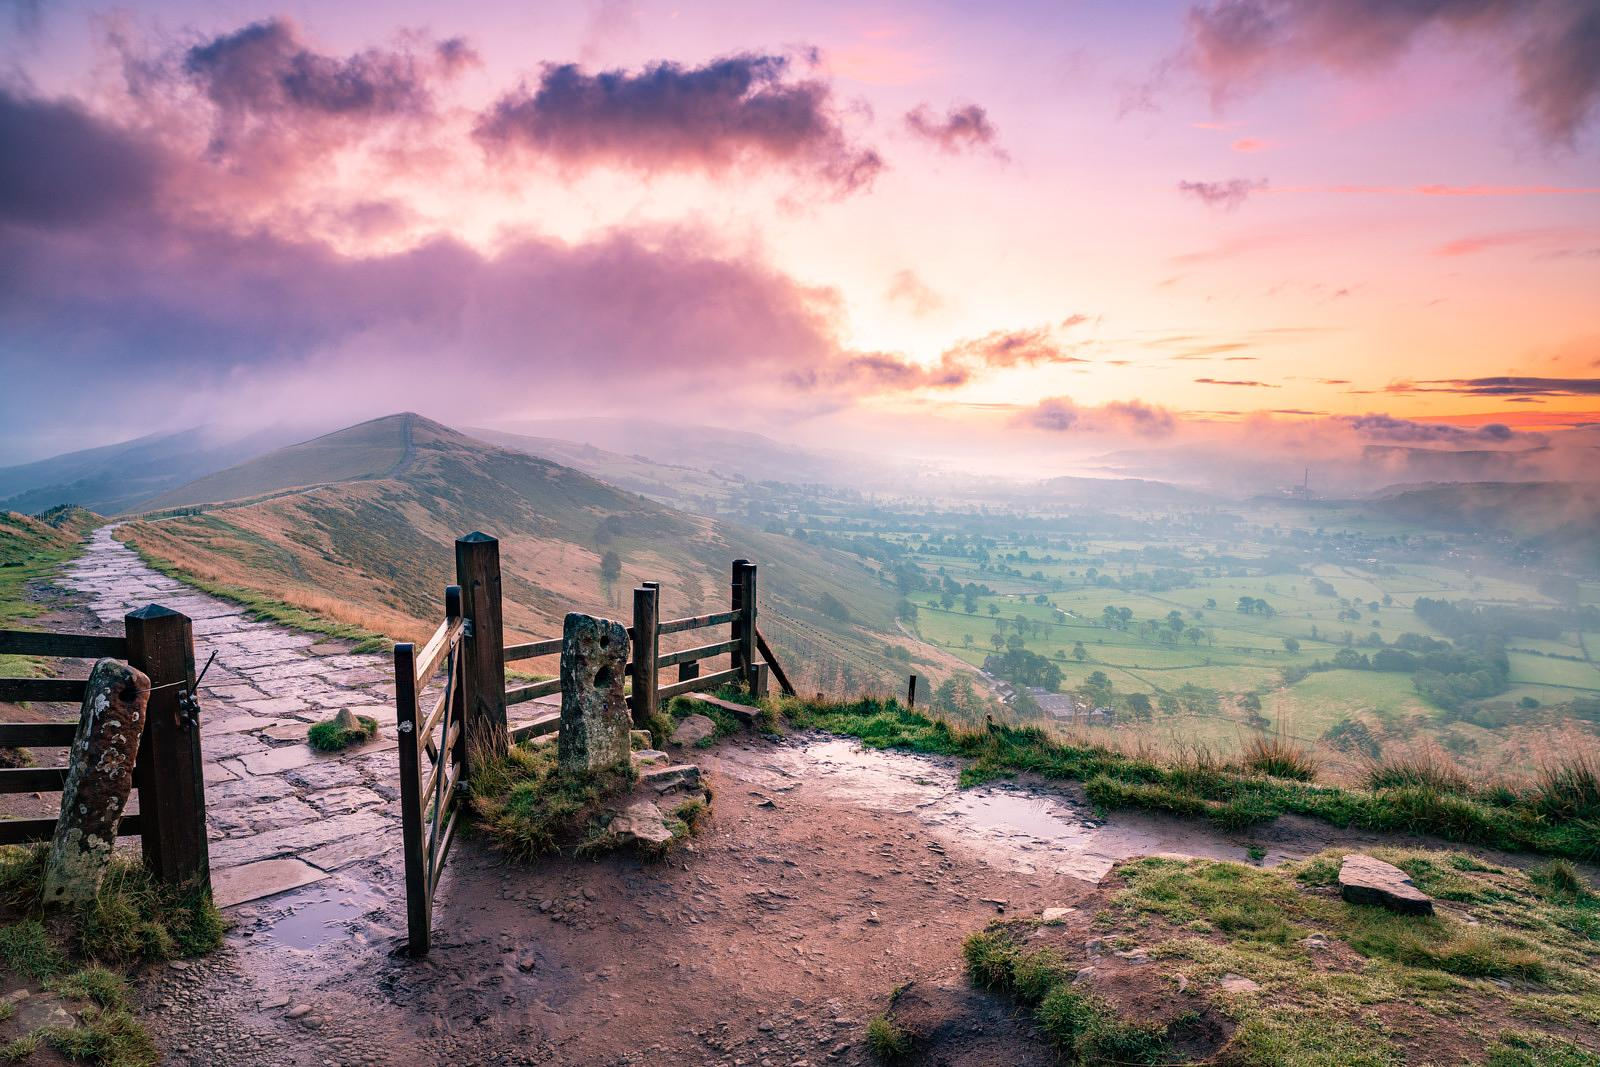 Dawn drama at the Great Ridge, Mam Tor gate